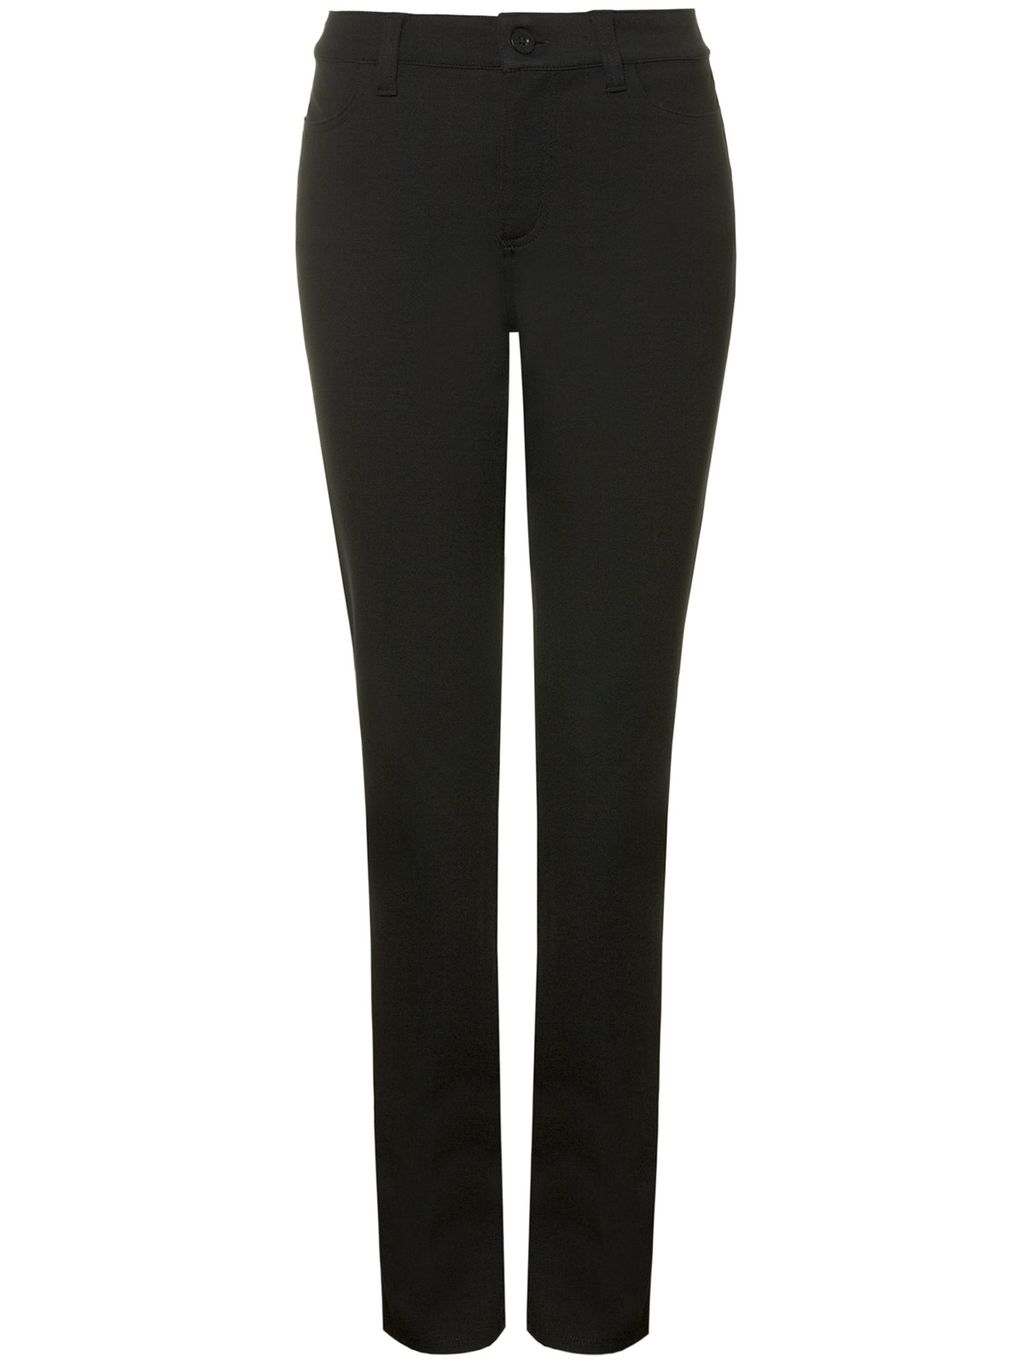 Slim Straight In Jersey, Black - length: standard; pattern: plain; waist: mid/regular rise; predominant colour: black; occasions: work; fit: slim leg; pattern type: fabric; texture group: woven light midweight; style: standard; fibres: viscose/rayon - mix; season: s/s 2016; wardrobe: basic